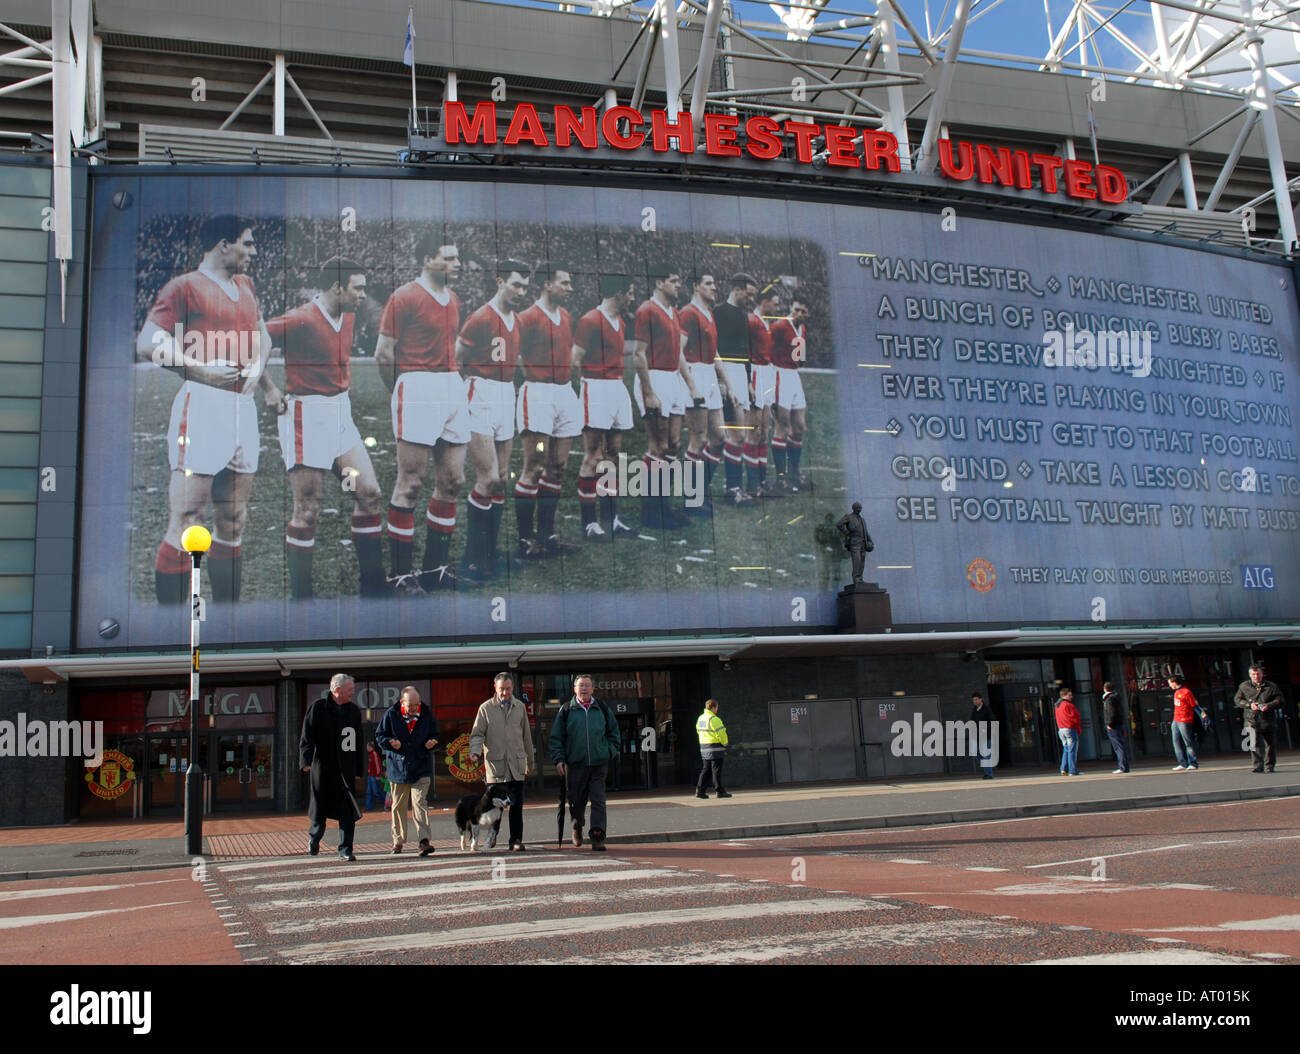 MUNICH remembered -  Manchester United's Old Trafford ground with the famous 1958 Busby Babes team as a backdrop - Stock Image